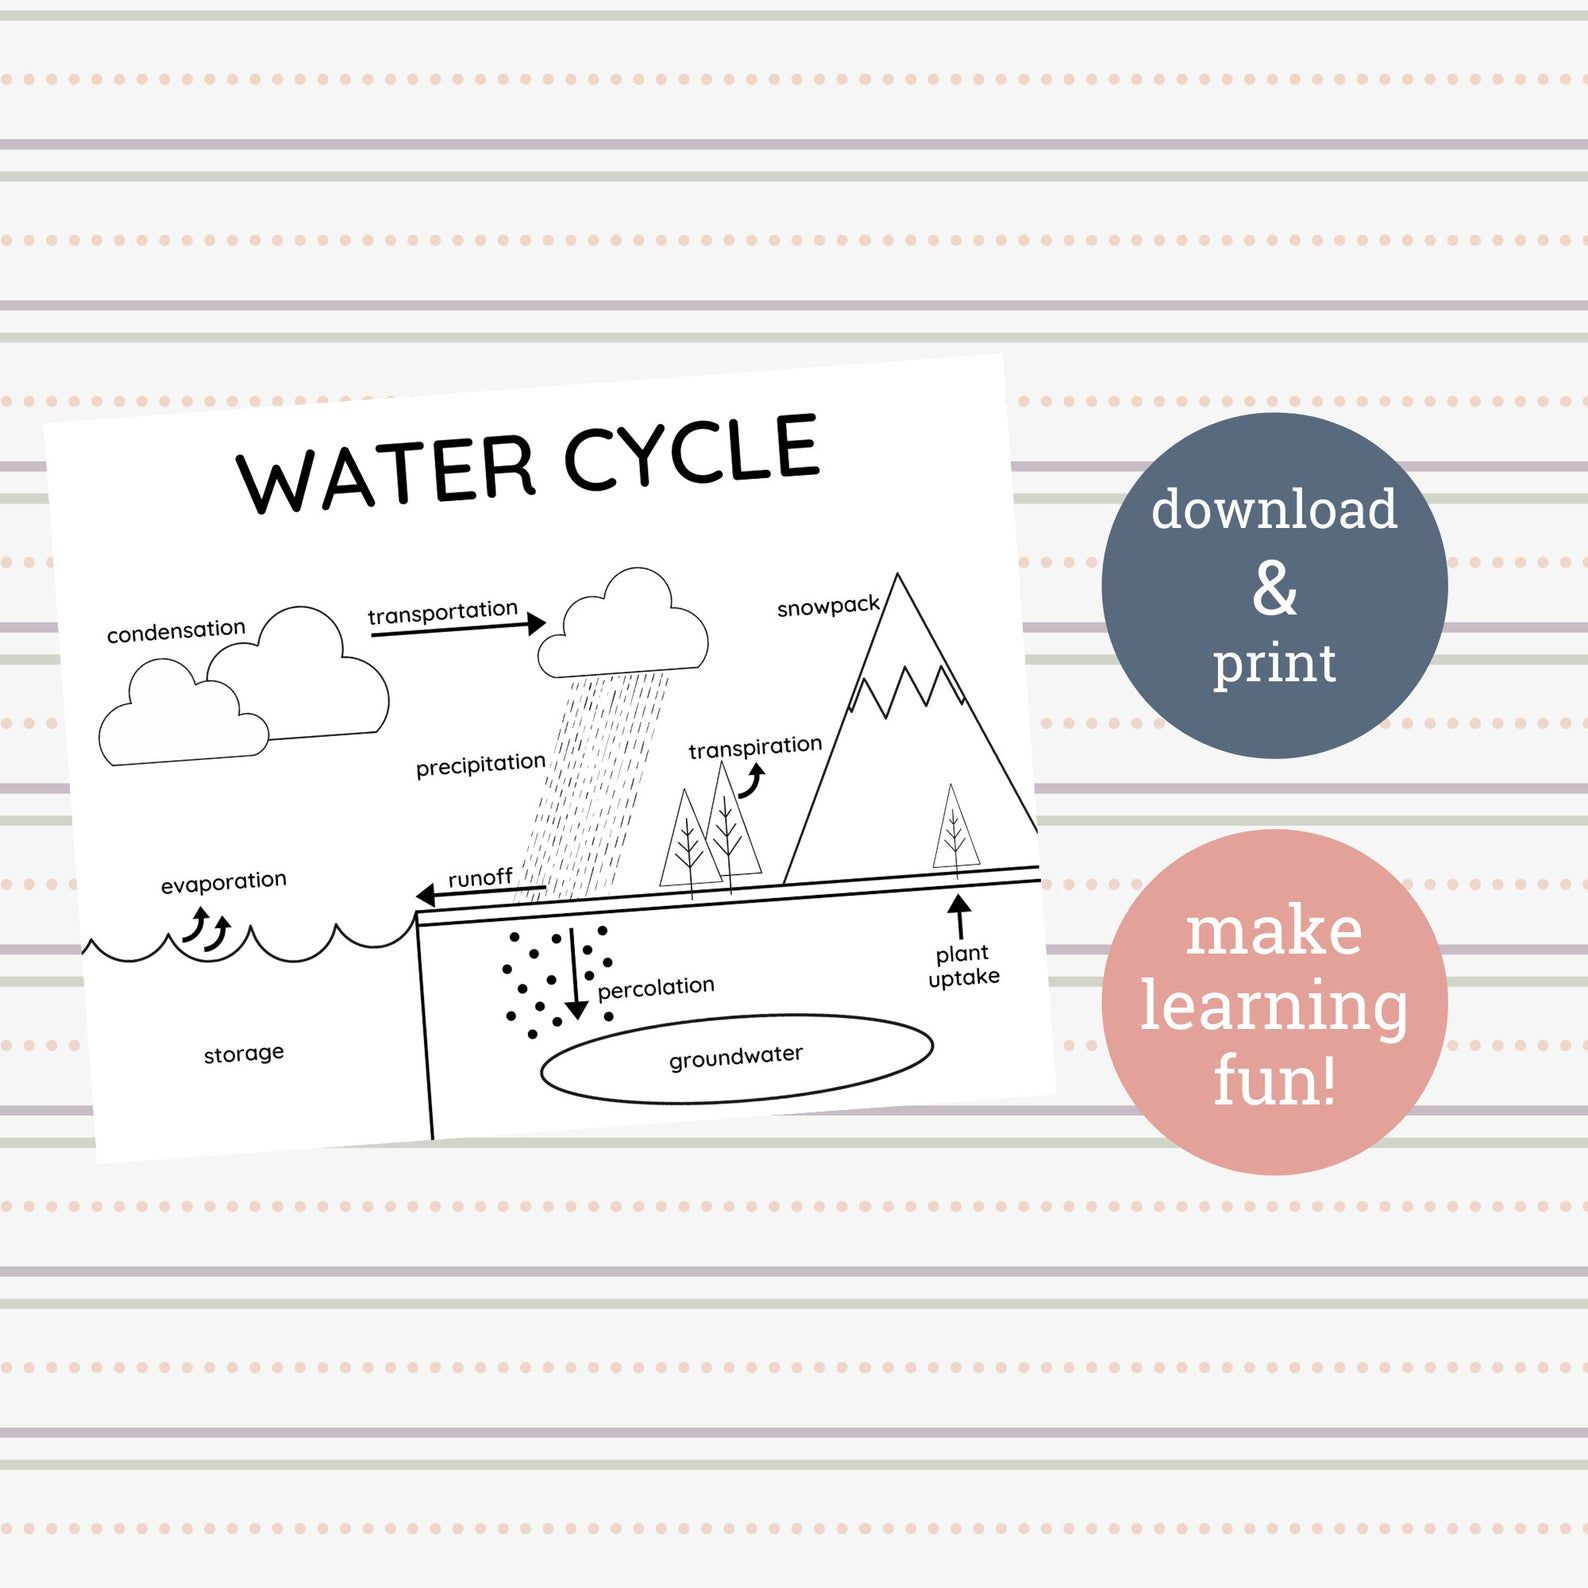 Water Cycle Printable Coloring Sheet in 2020 Printable